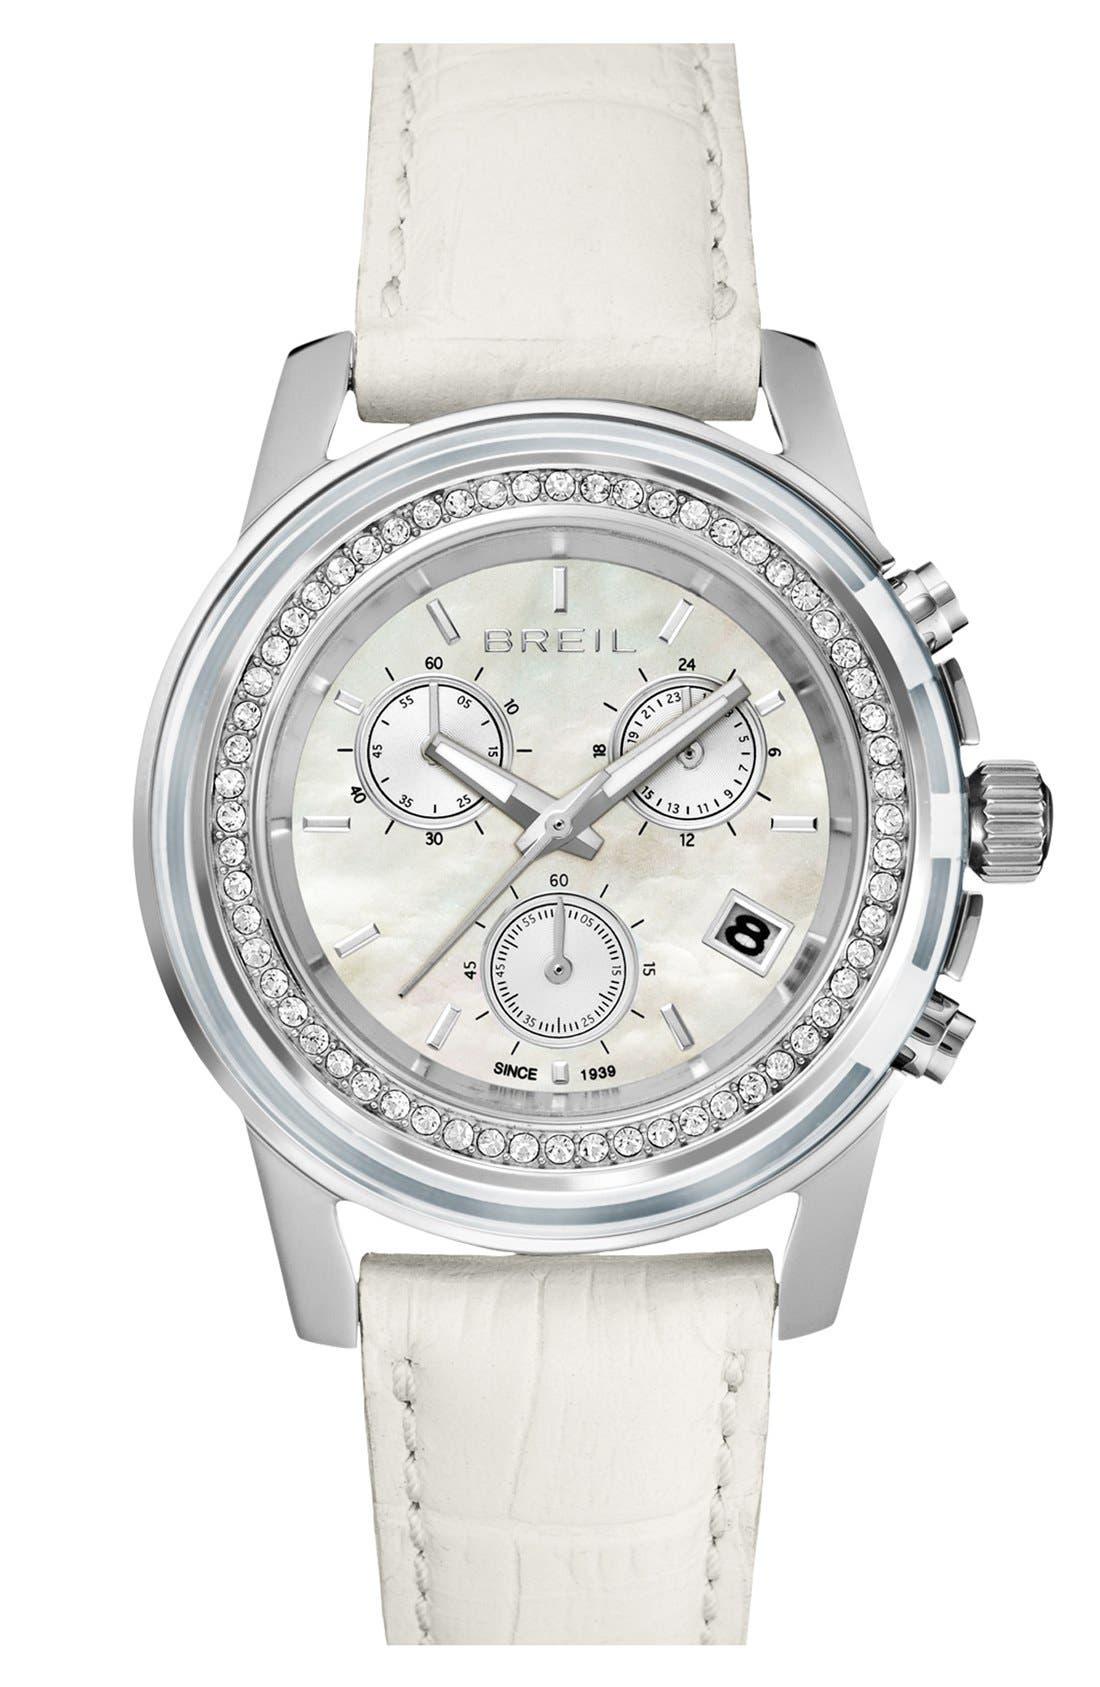 Alternate Image 1 Selected - Breil 'Orchestra' Crystal Bezel Chronograph Watch, 37mm ($375 Value)